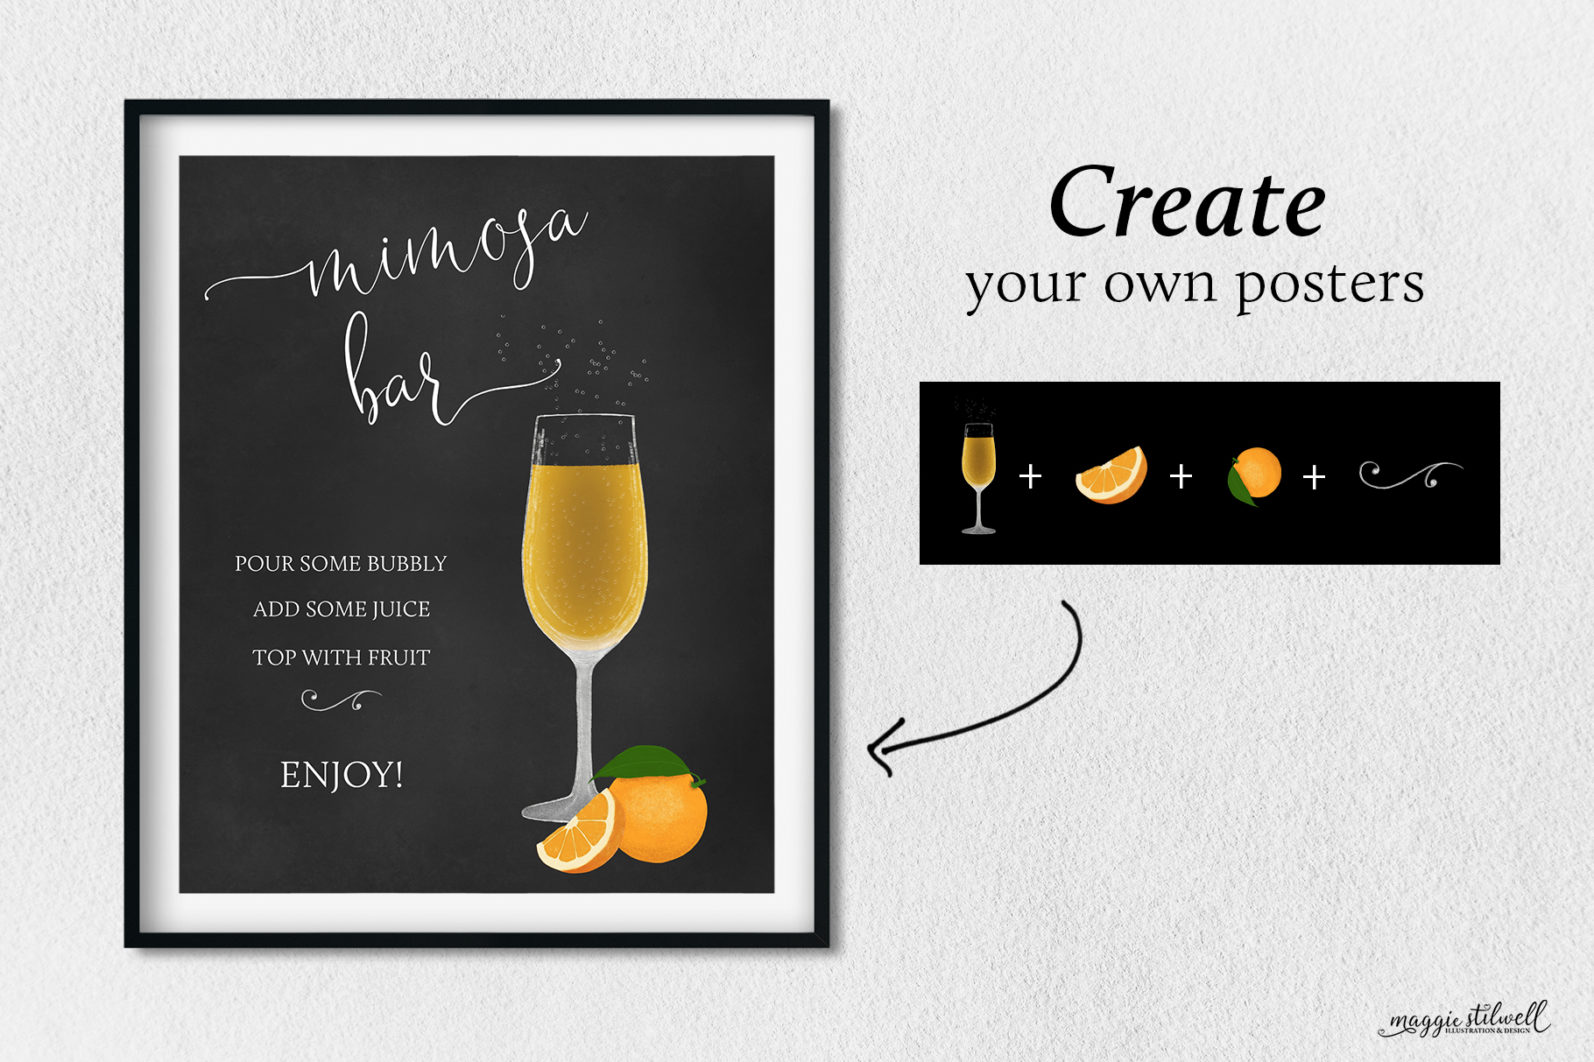 Cocktail Illustrations & Posters - page create posters -